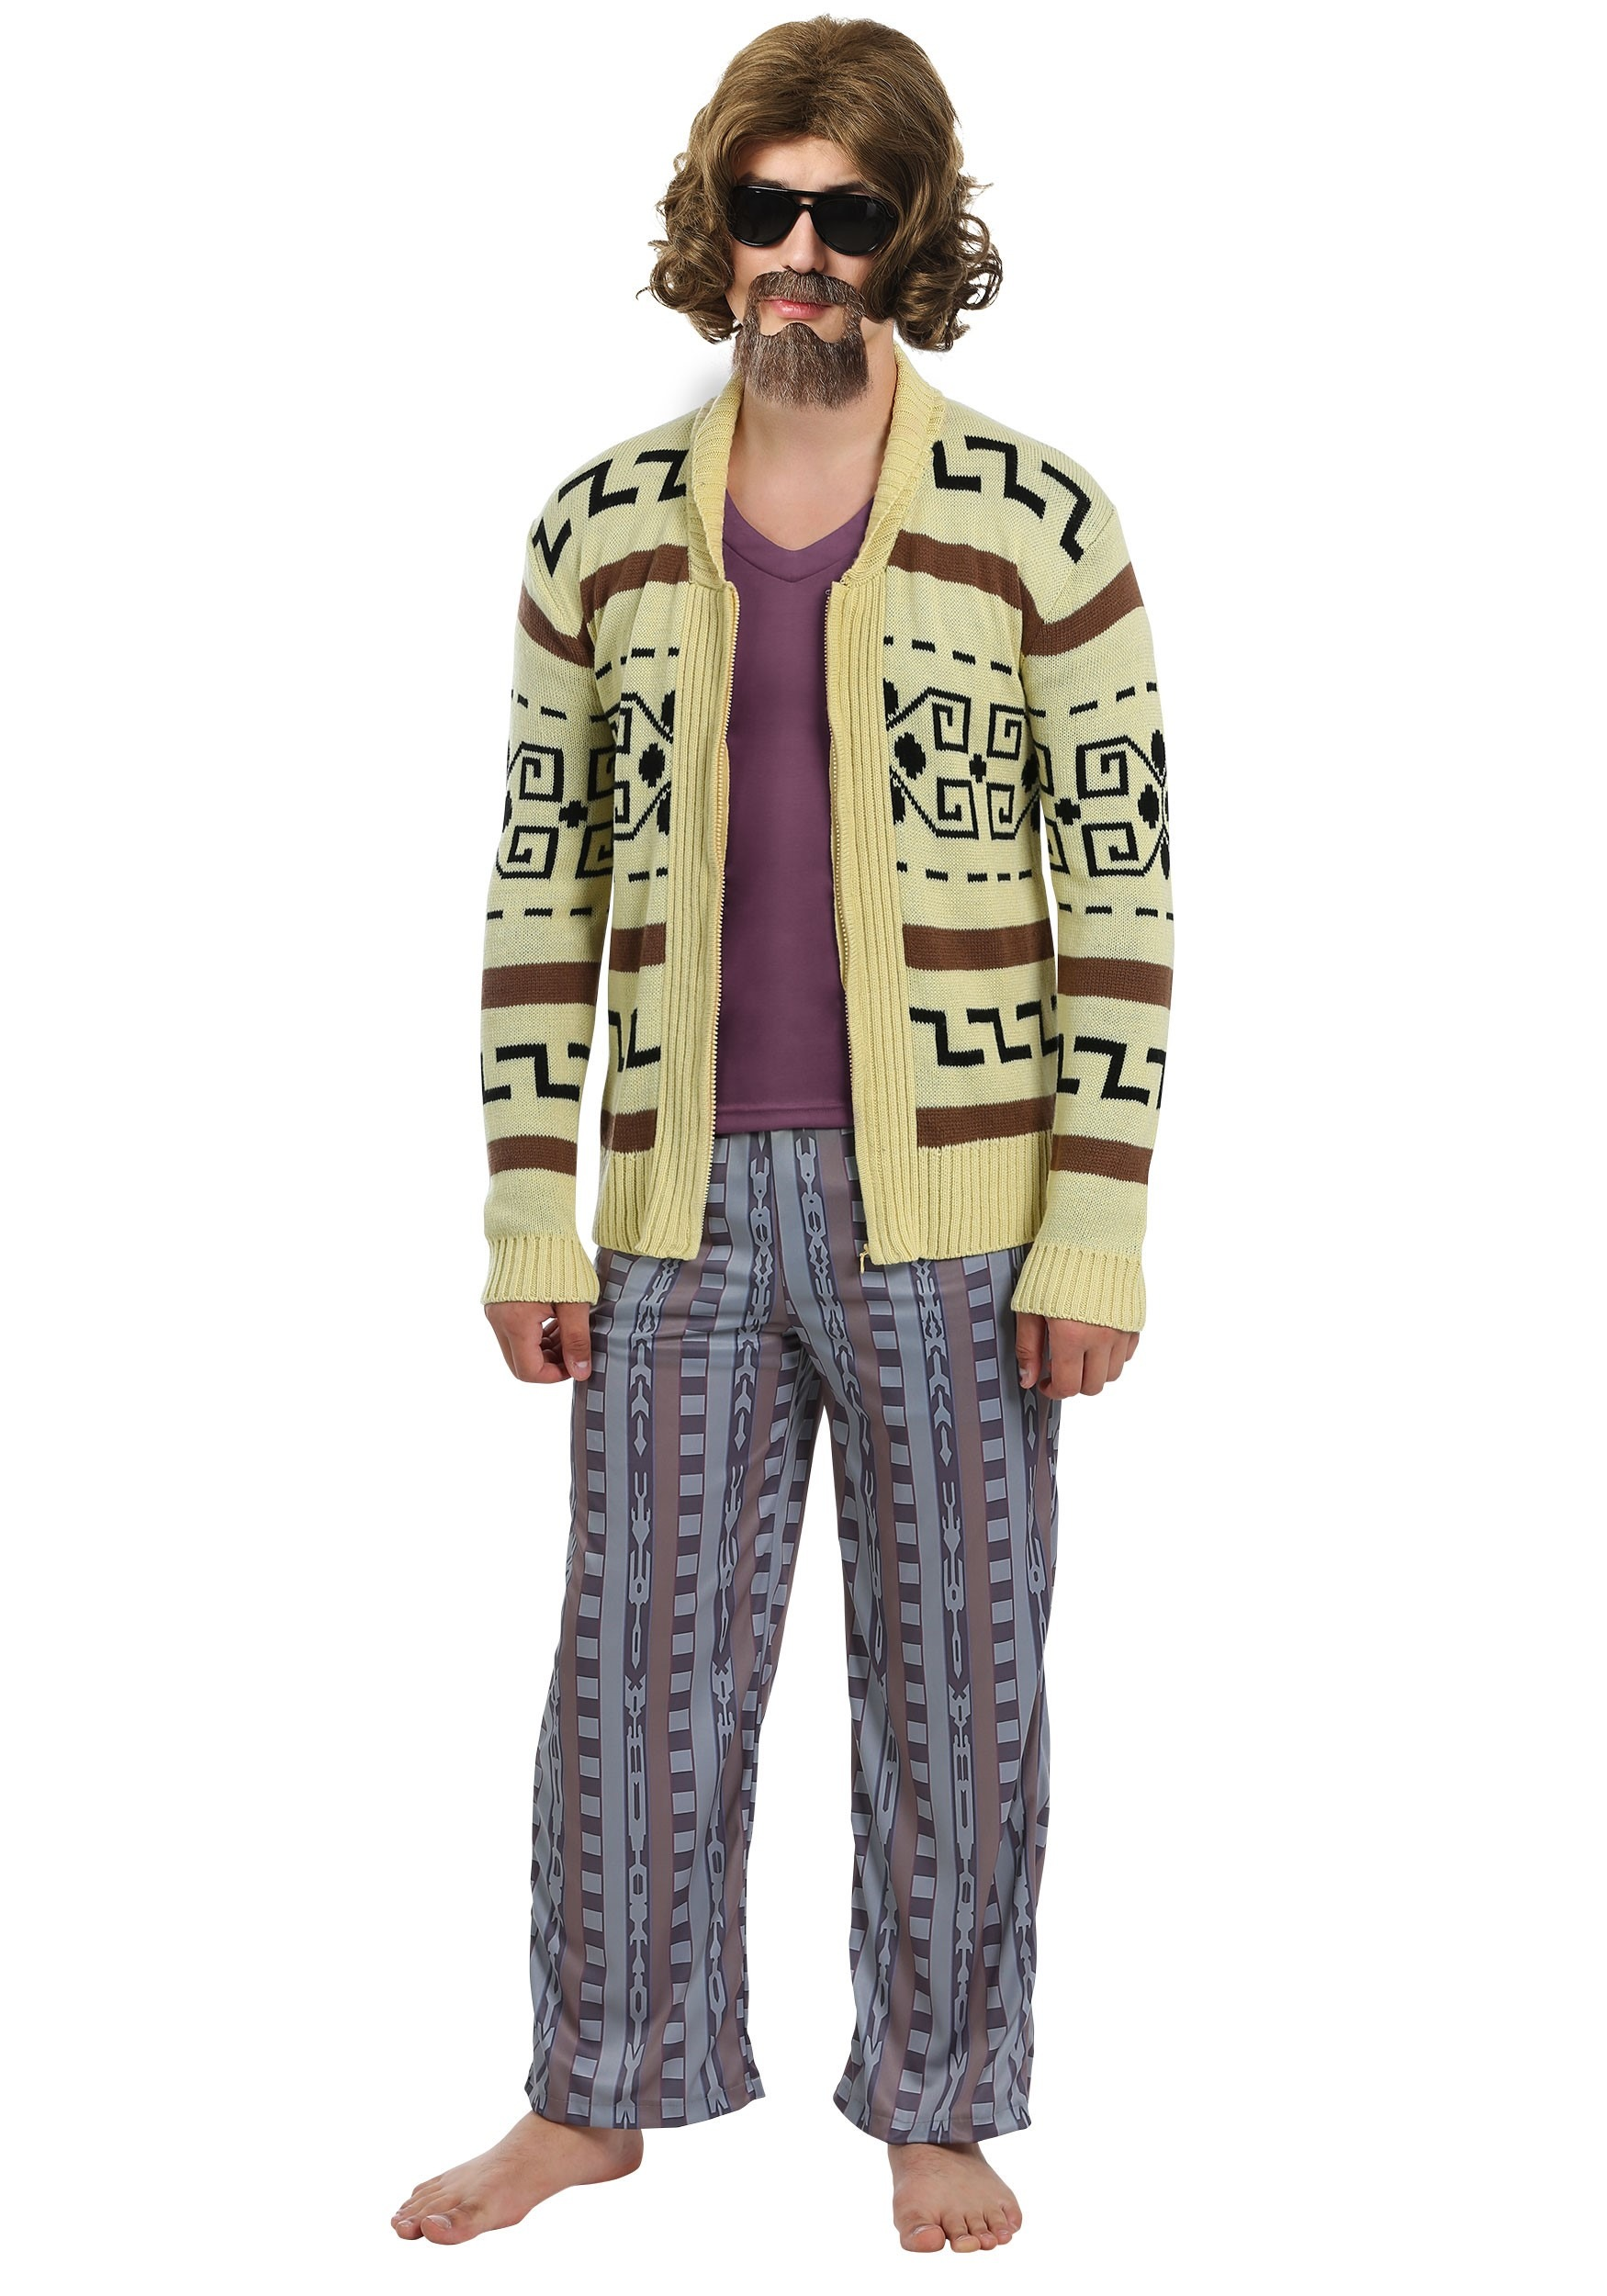 Big Lebowski The Dude Sweater Costume for Plus Size Men